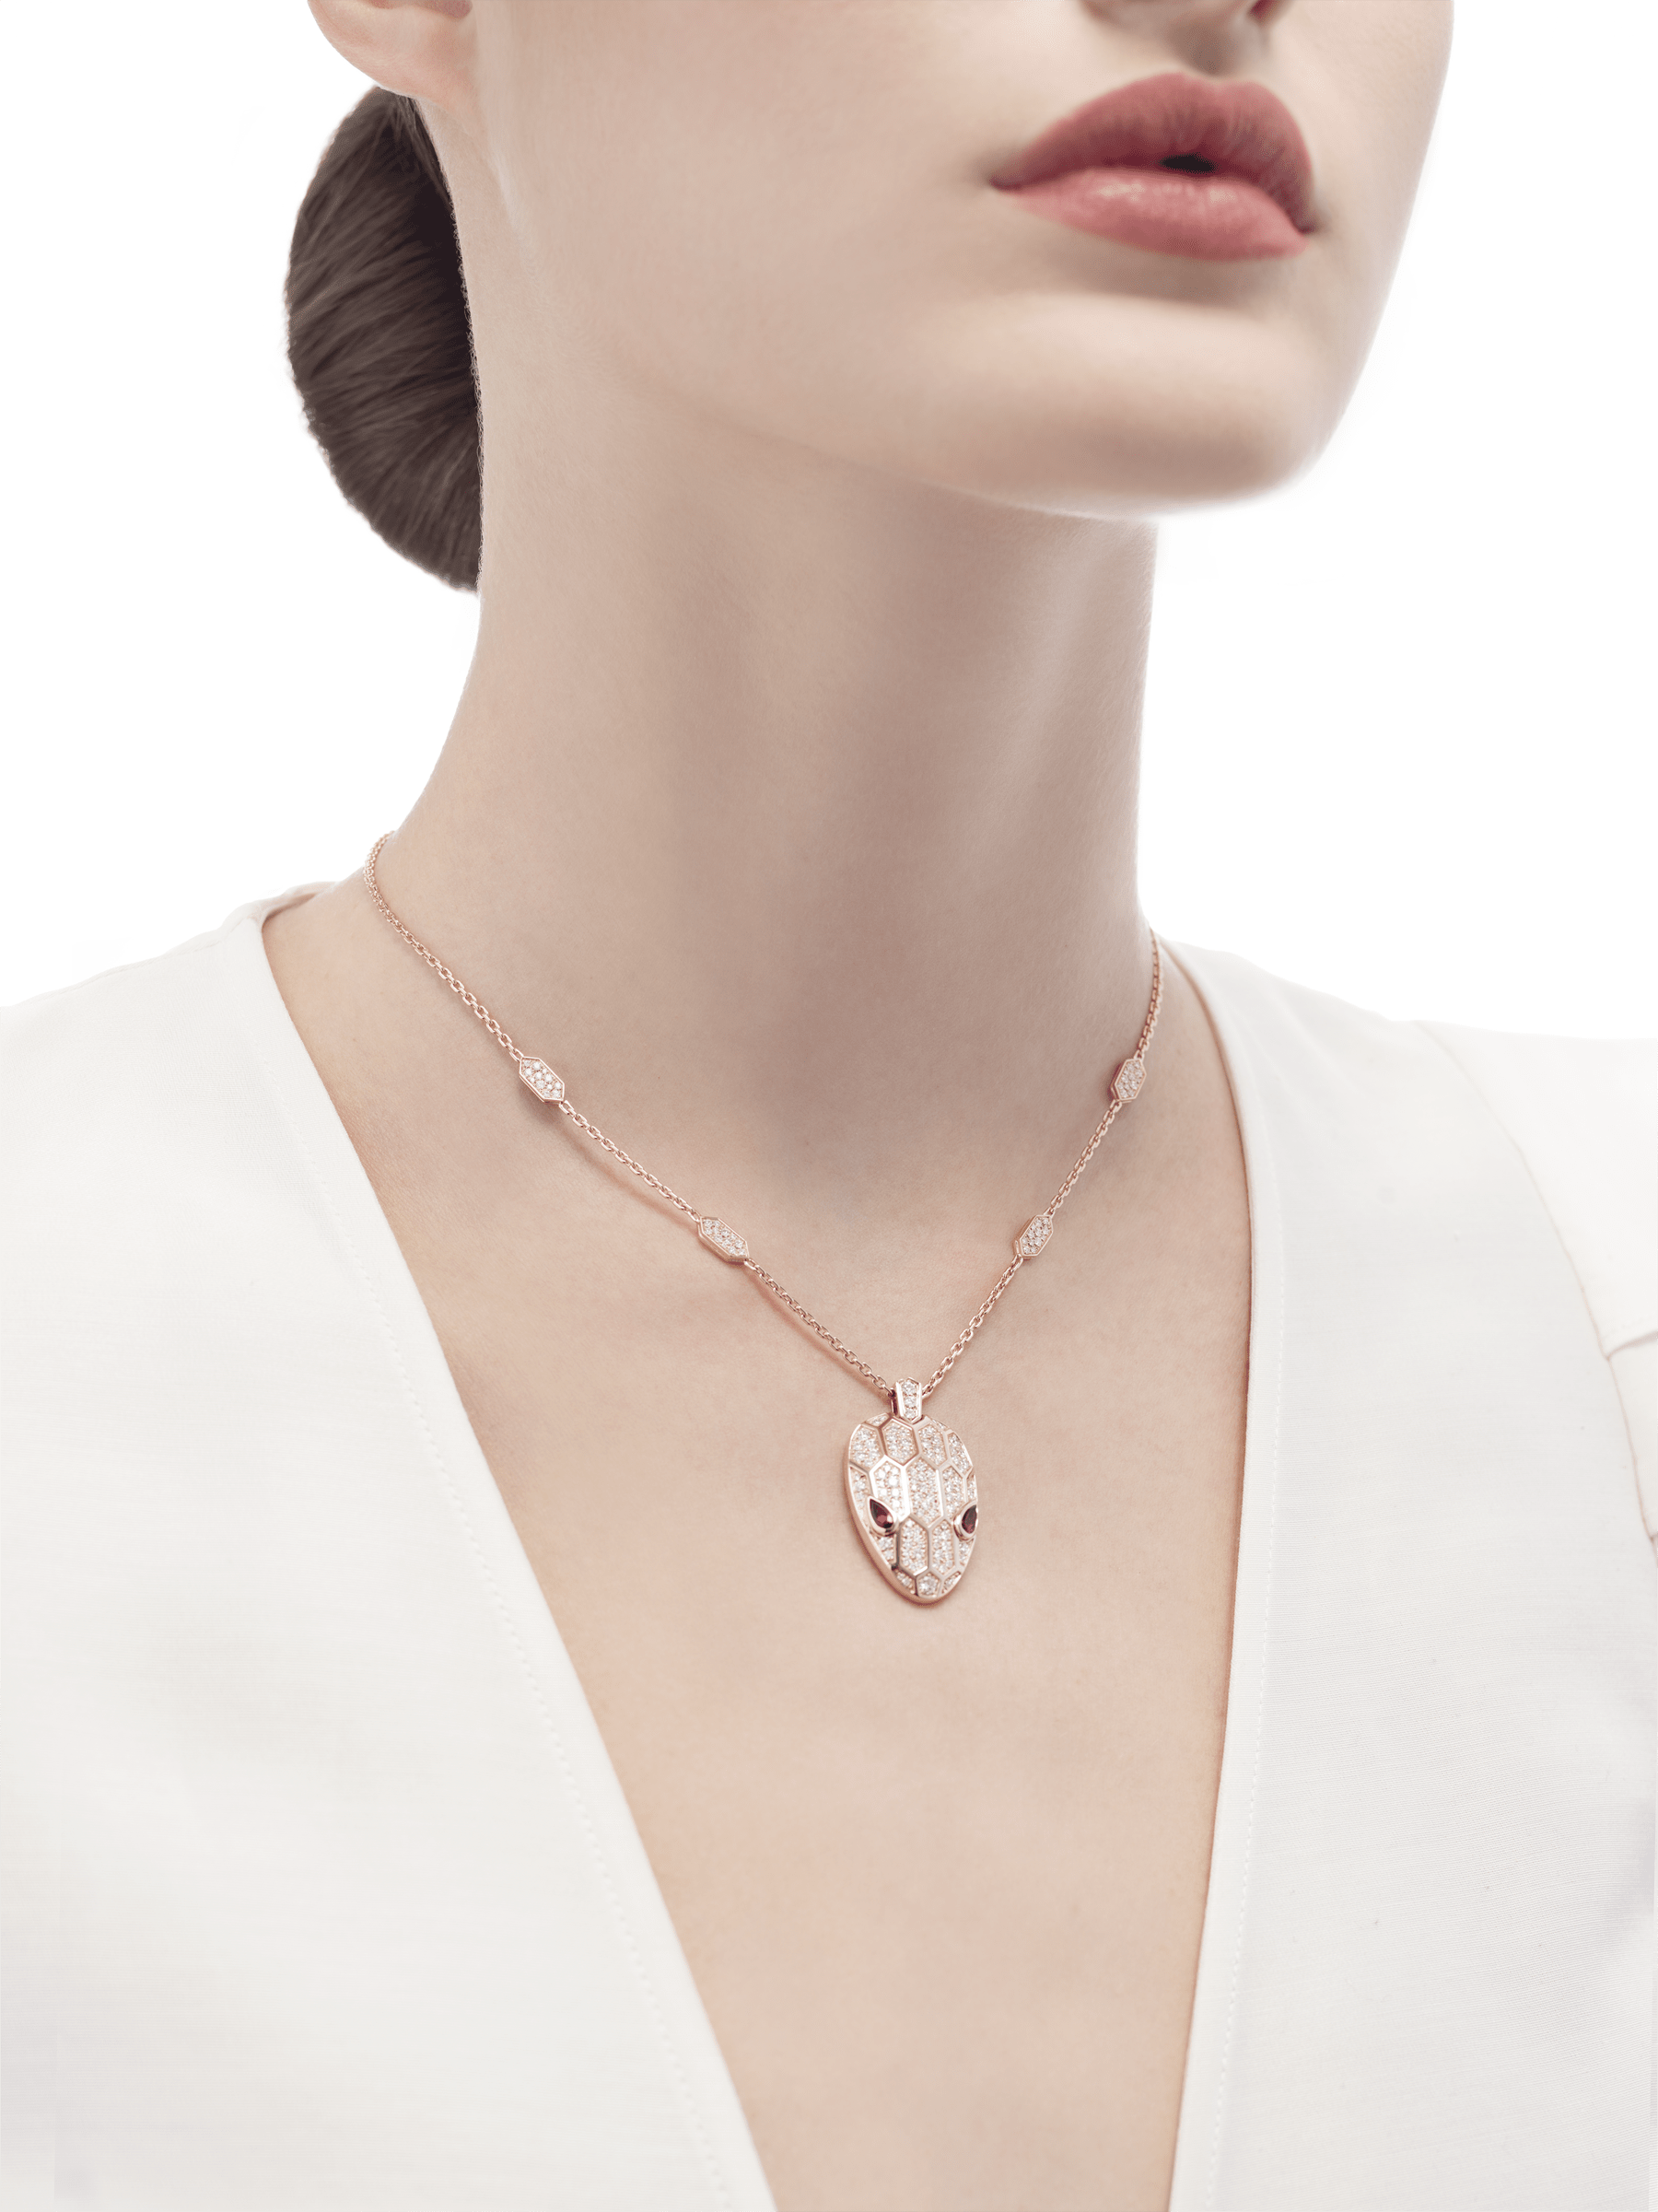 Serpenti necklace in 18 kt rose gold, set with rubellite eyes and with pavé diamonds on the chain and the head. 352725 image 4